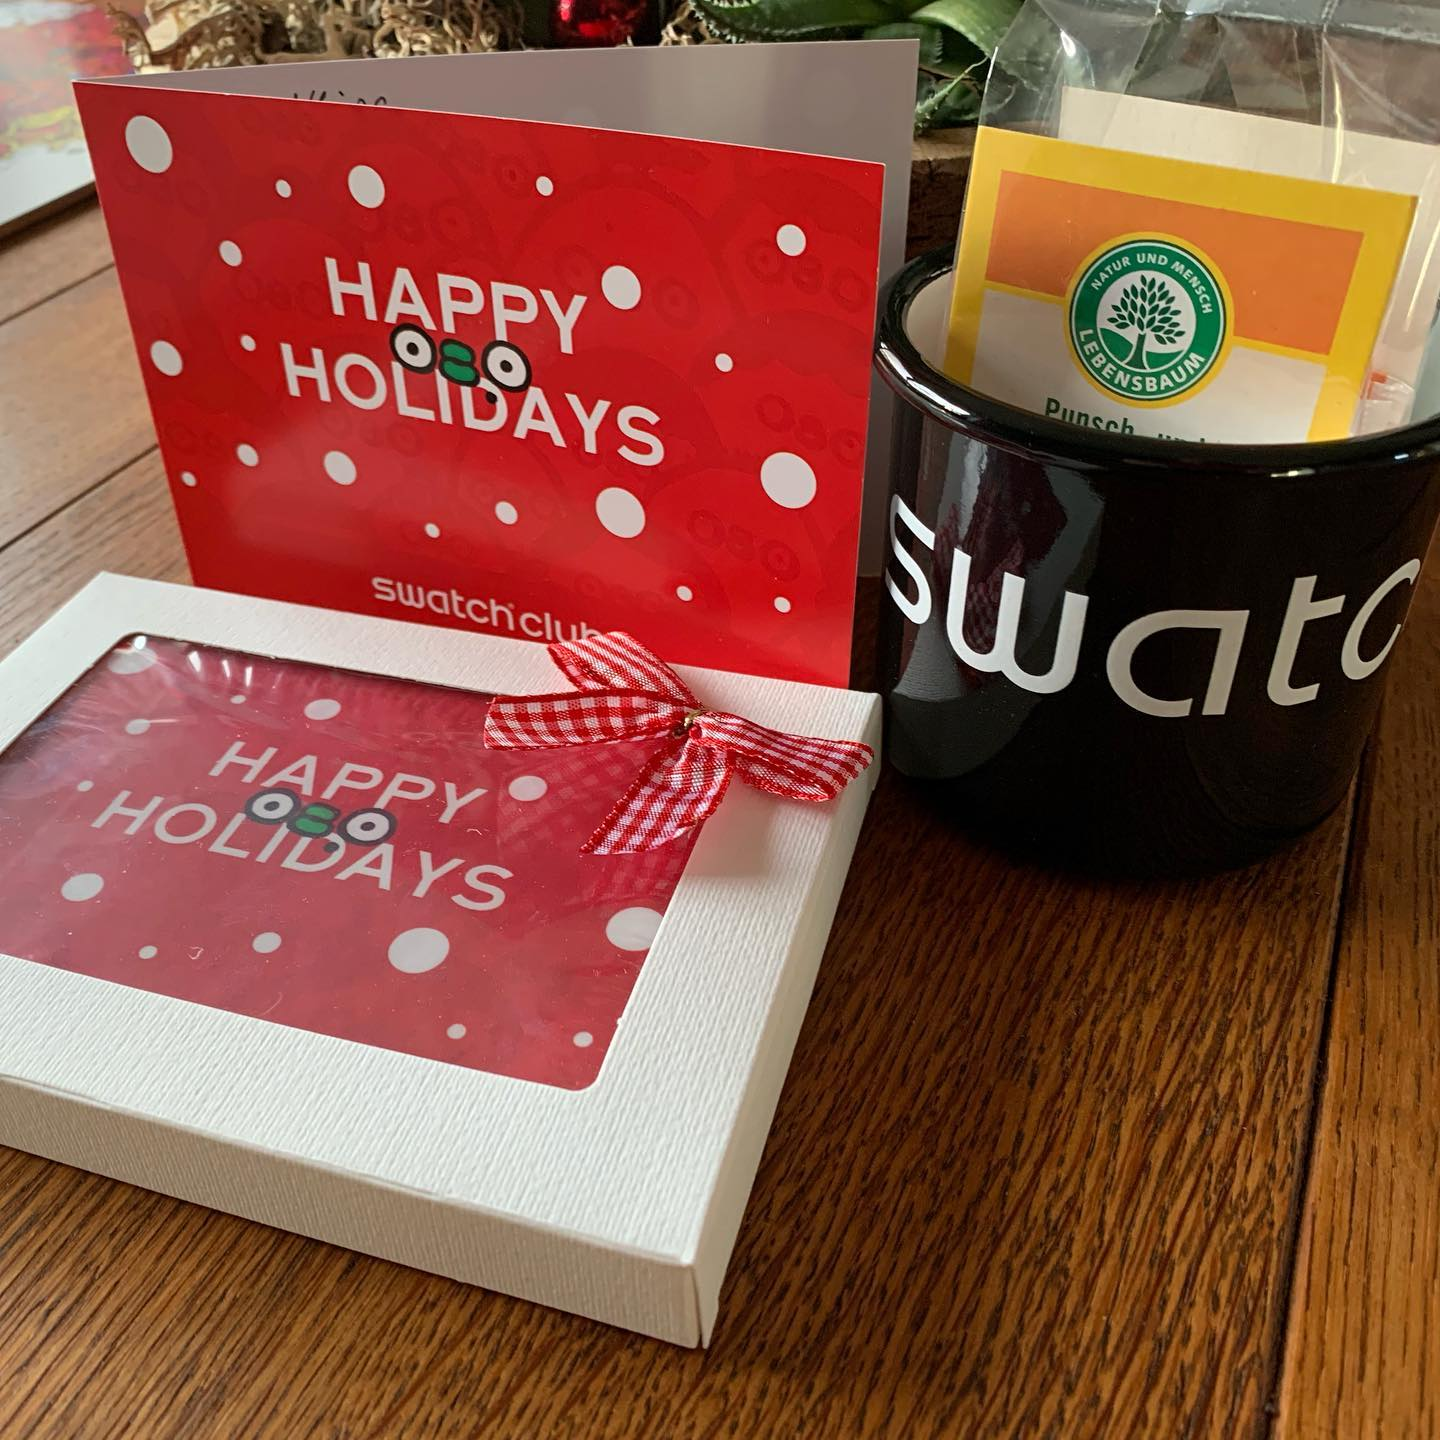 Thank you Swatch Germany for your Christmas greetings @swatch @swatchclub